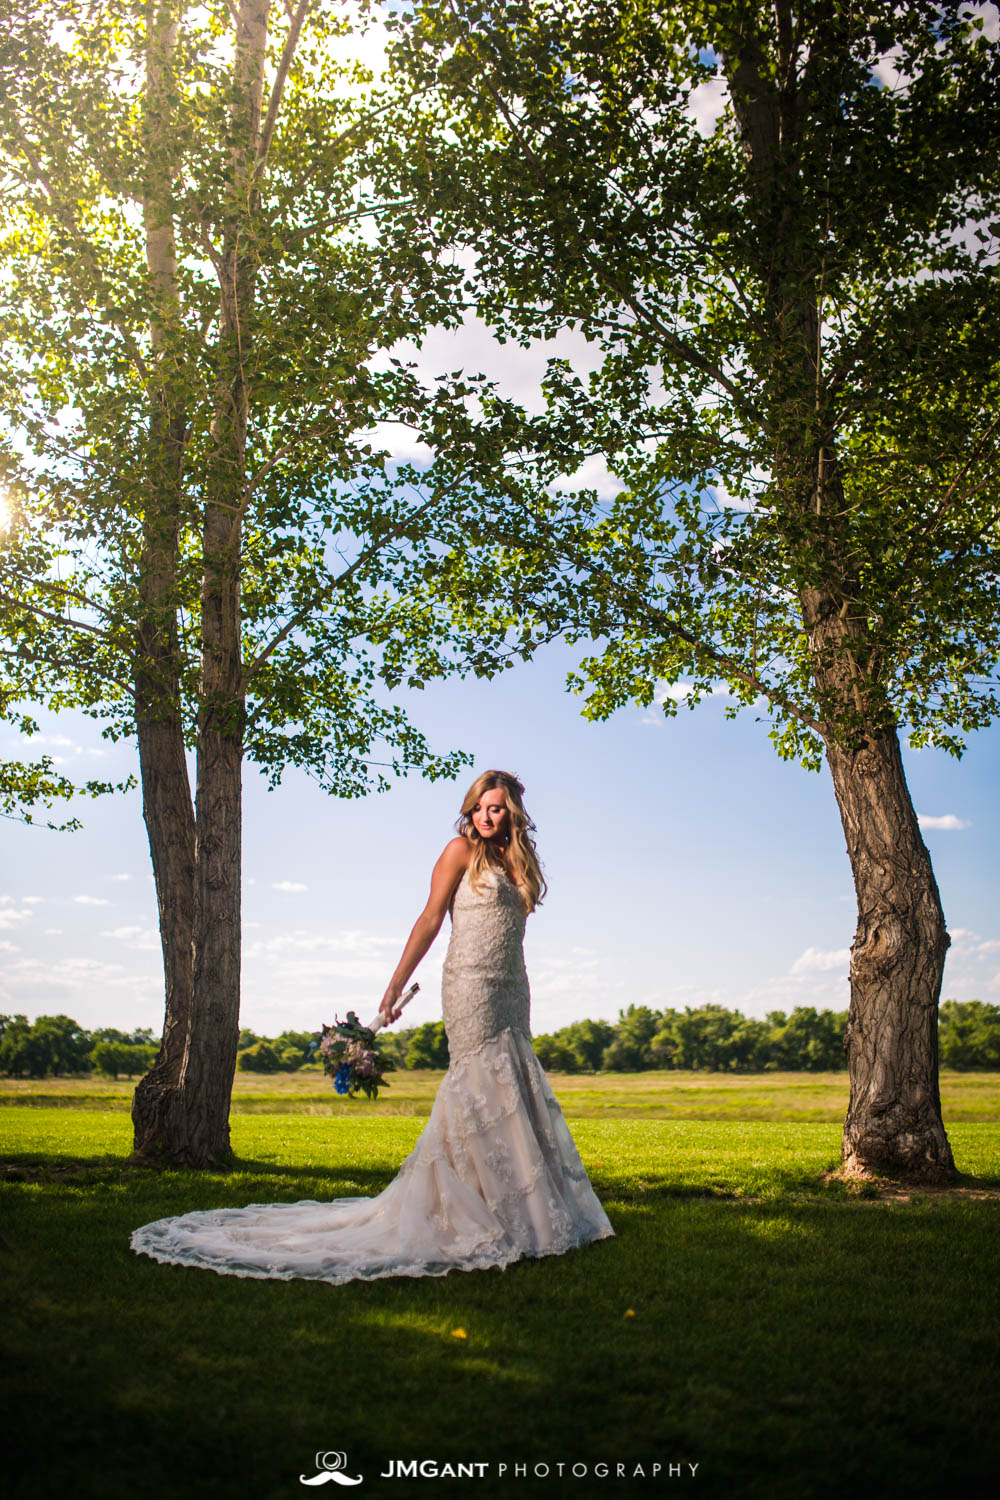 Platte River Fort Wedding | Bridals on a sunny day | Greeley Colorado wedding photographer | © JMGant Photography | http://www.jmgantphotography.com/